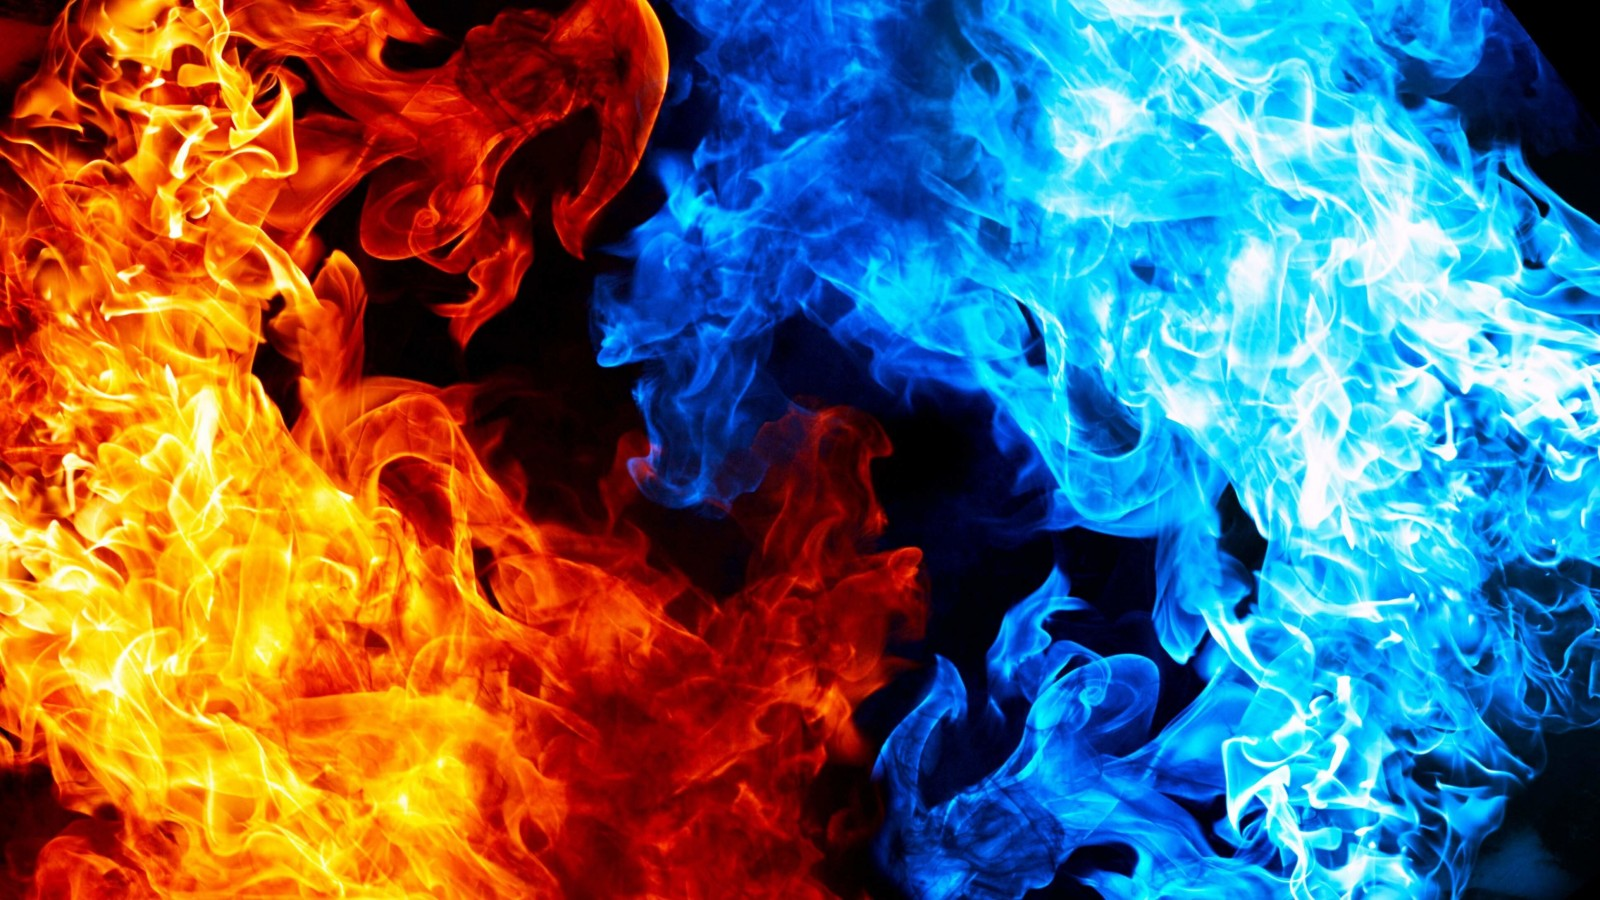 Blue And Red Fire Wallpaper for Desktop 1600x900